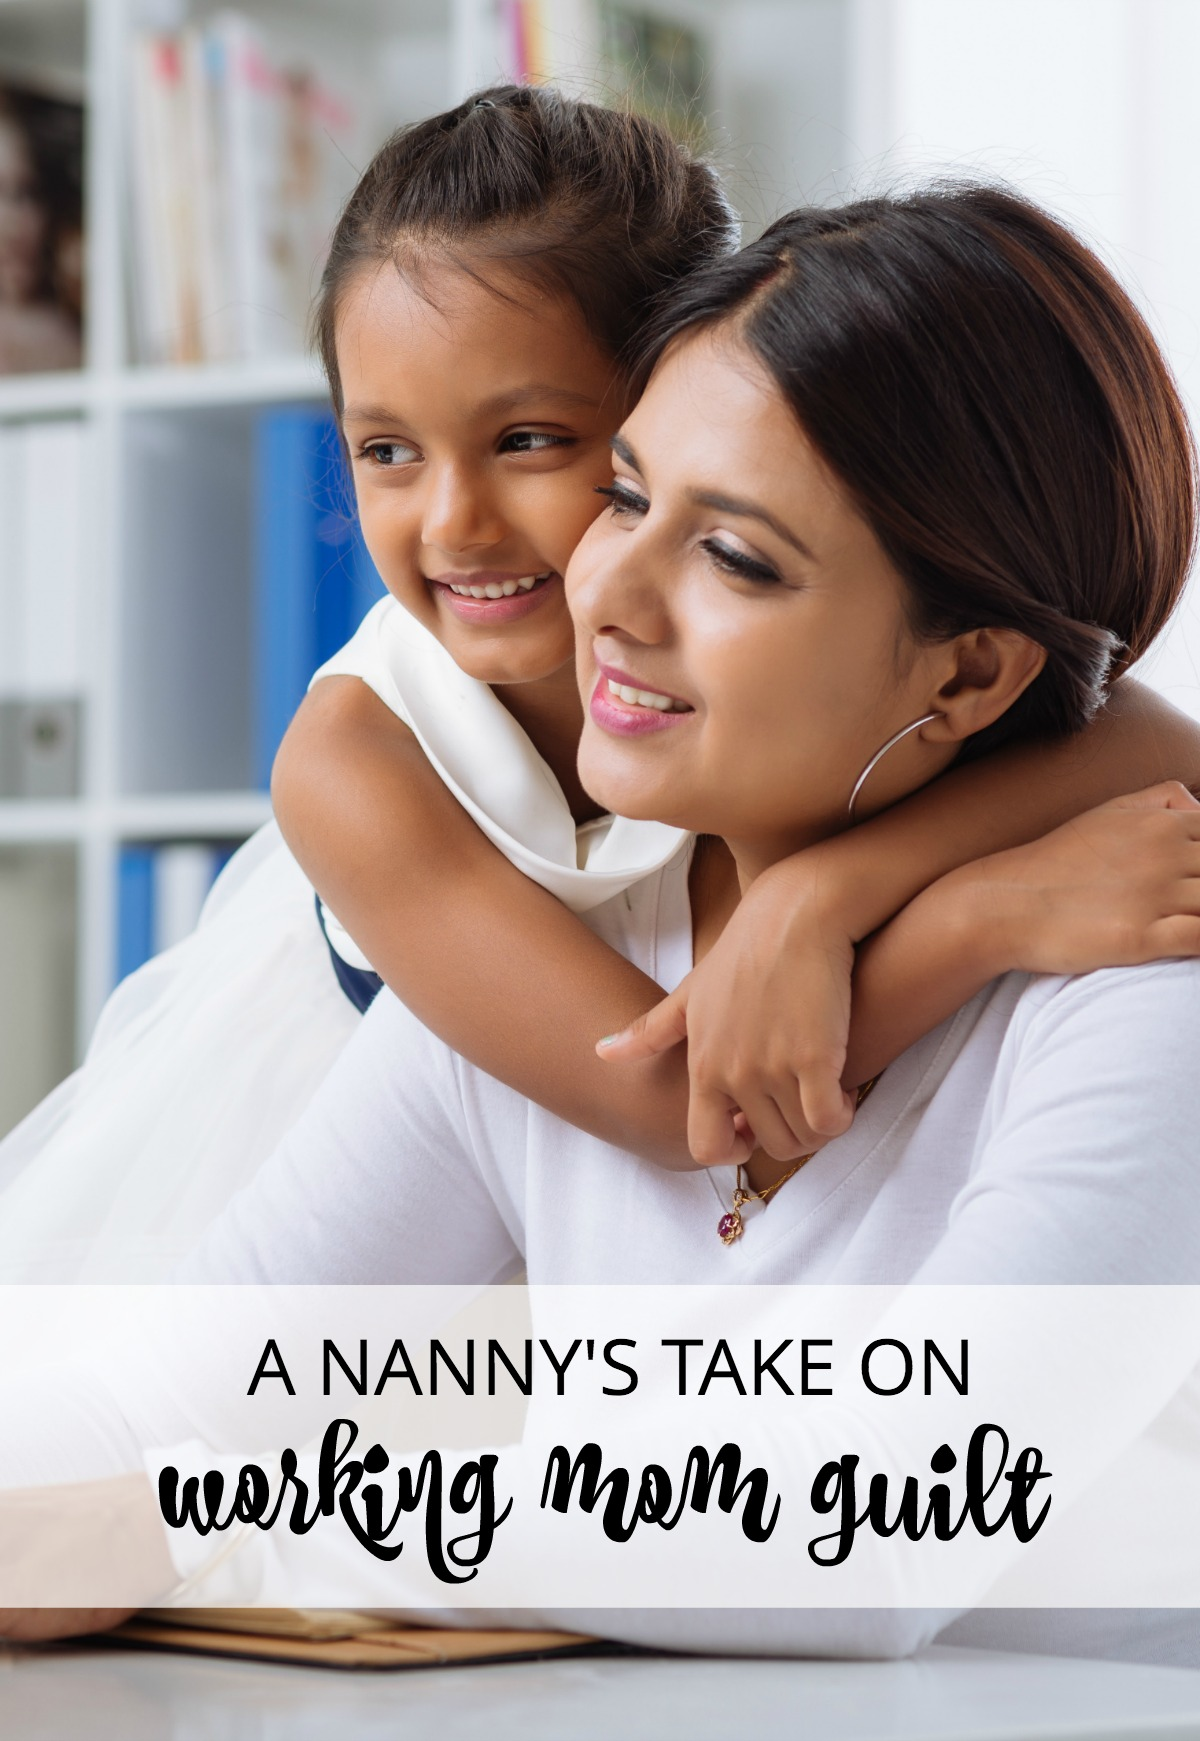 Guilt may come from many sources, but we can become our own worst enemies. If you're feeling guilty, read this nanny's reassuring message to working moms.